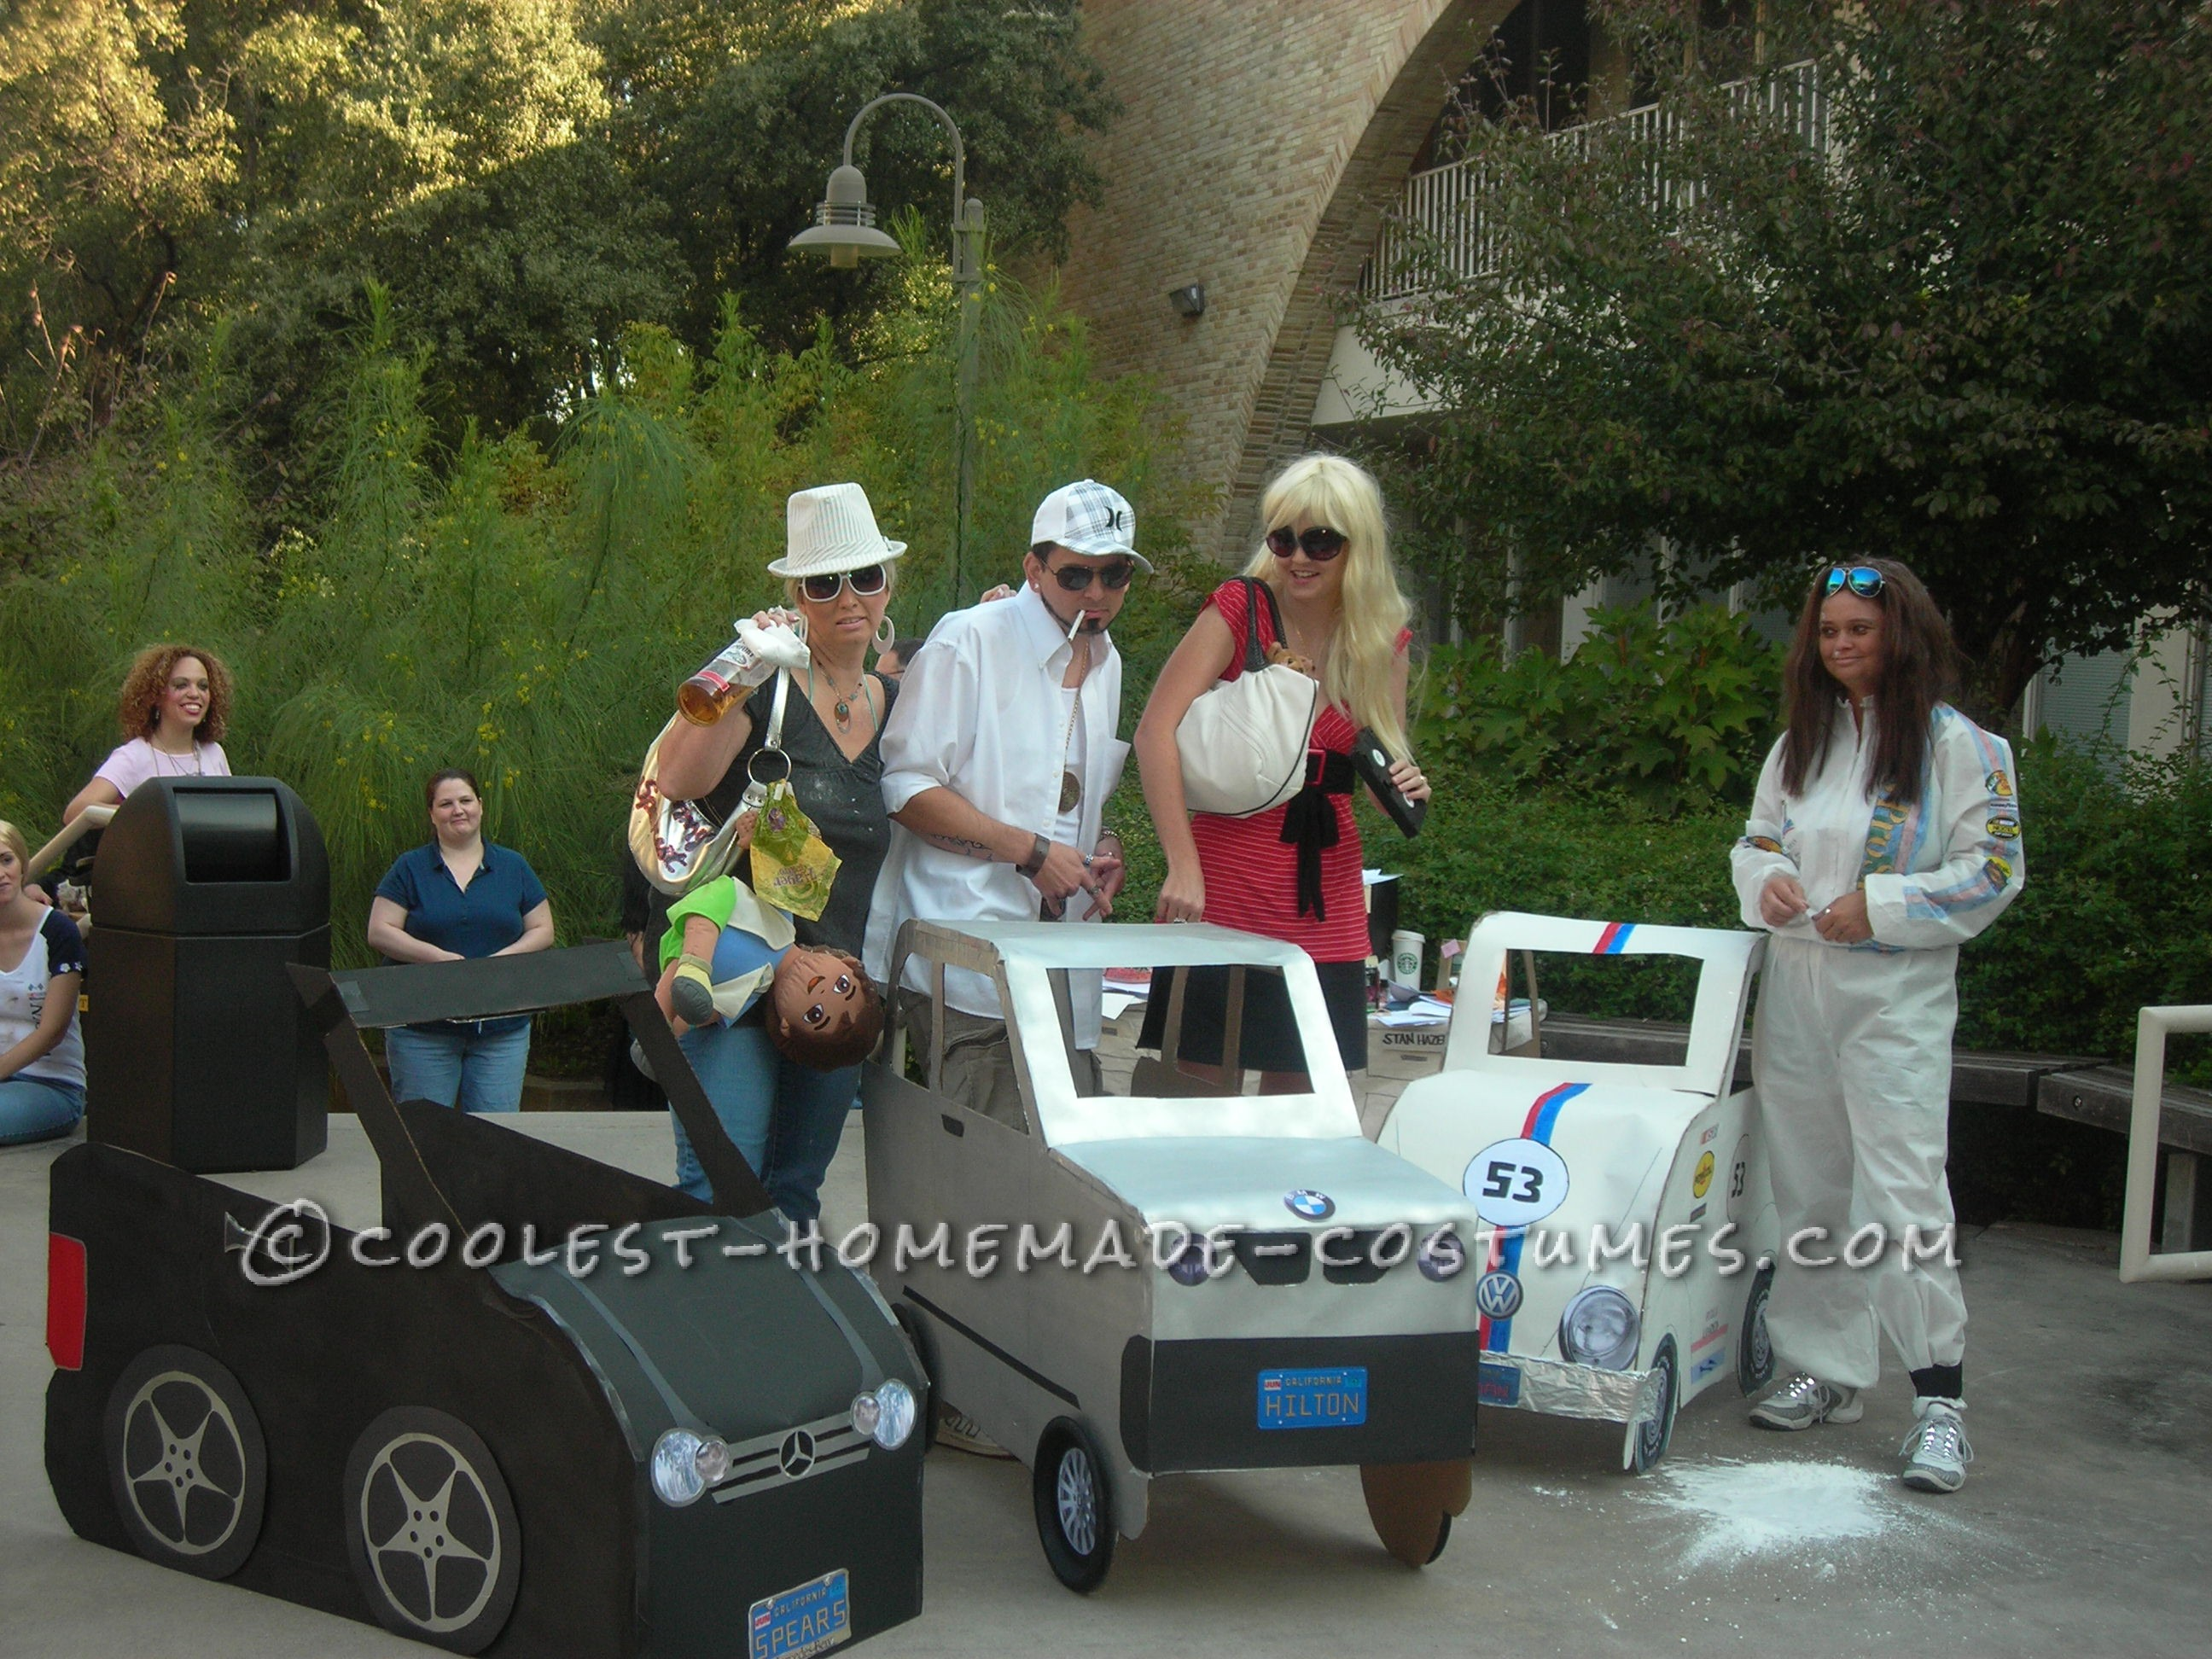 Funny Group Costume for Halloween: KFED and the Hollywood Bad Girls